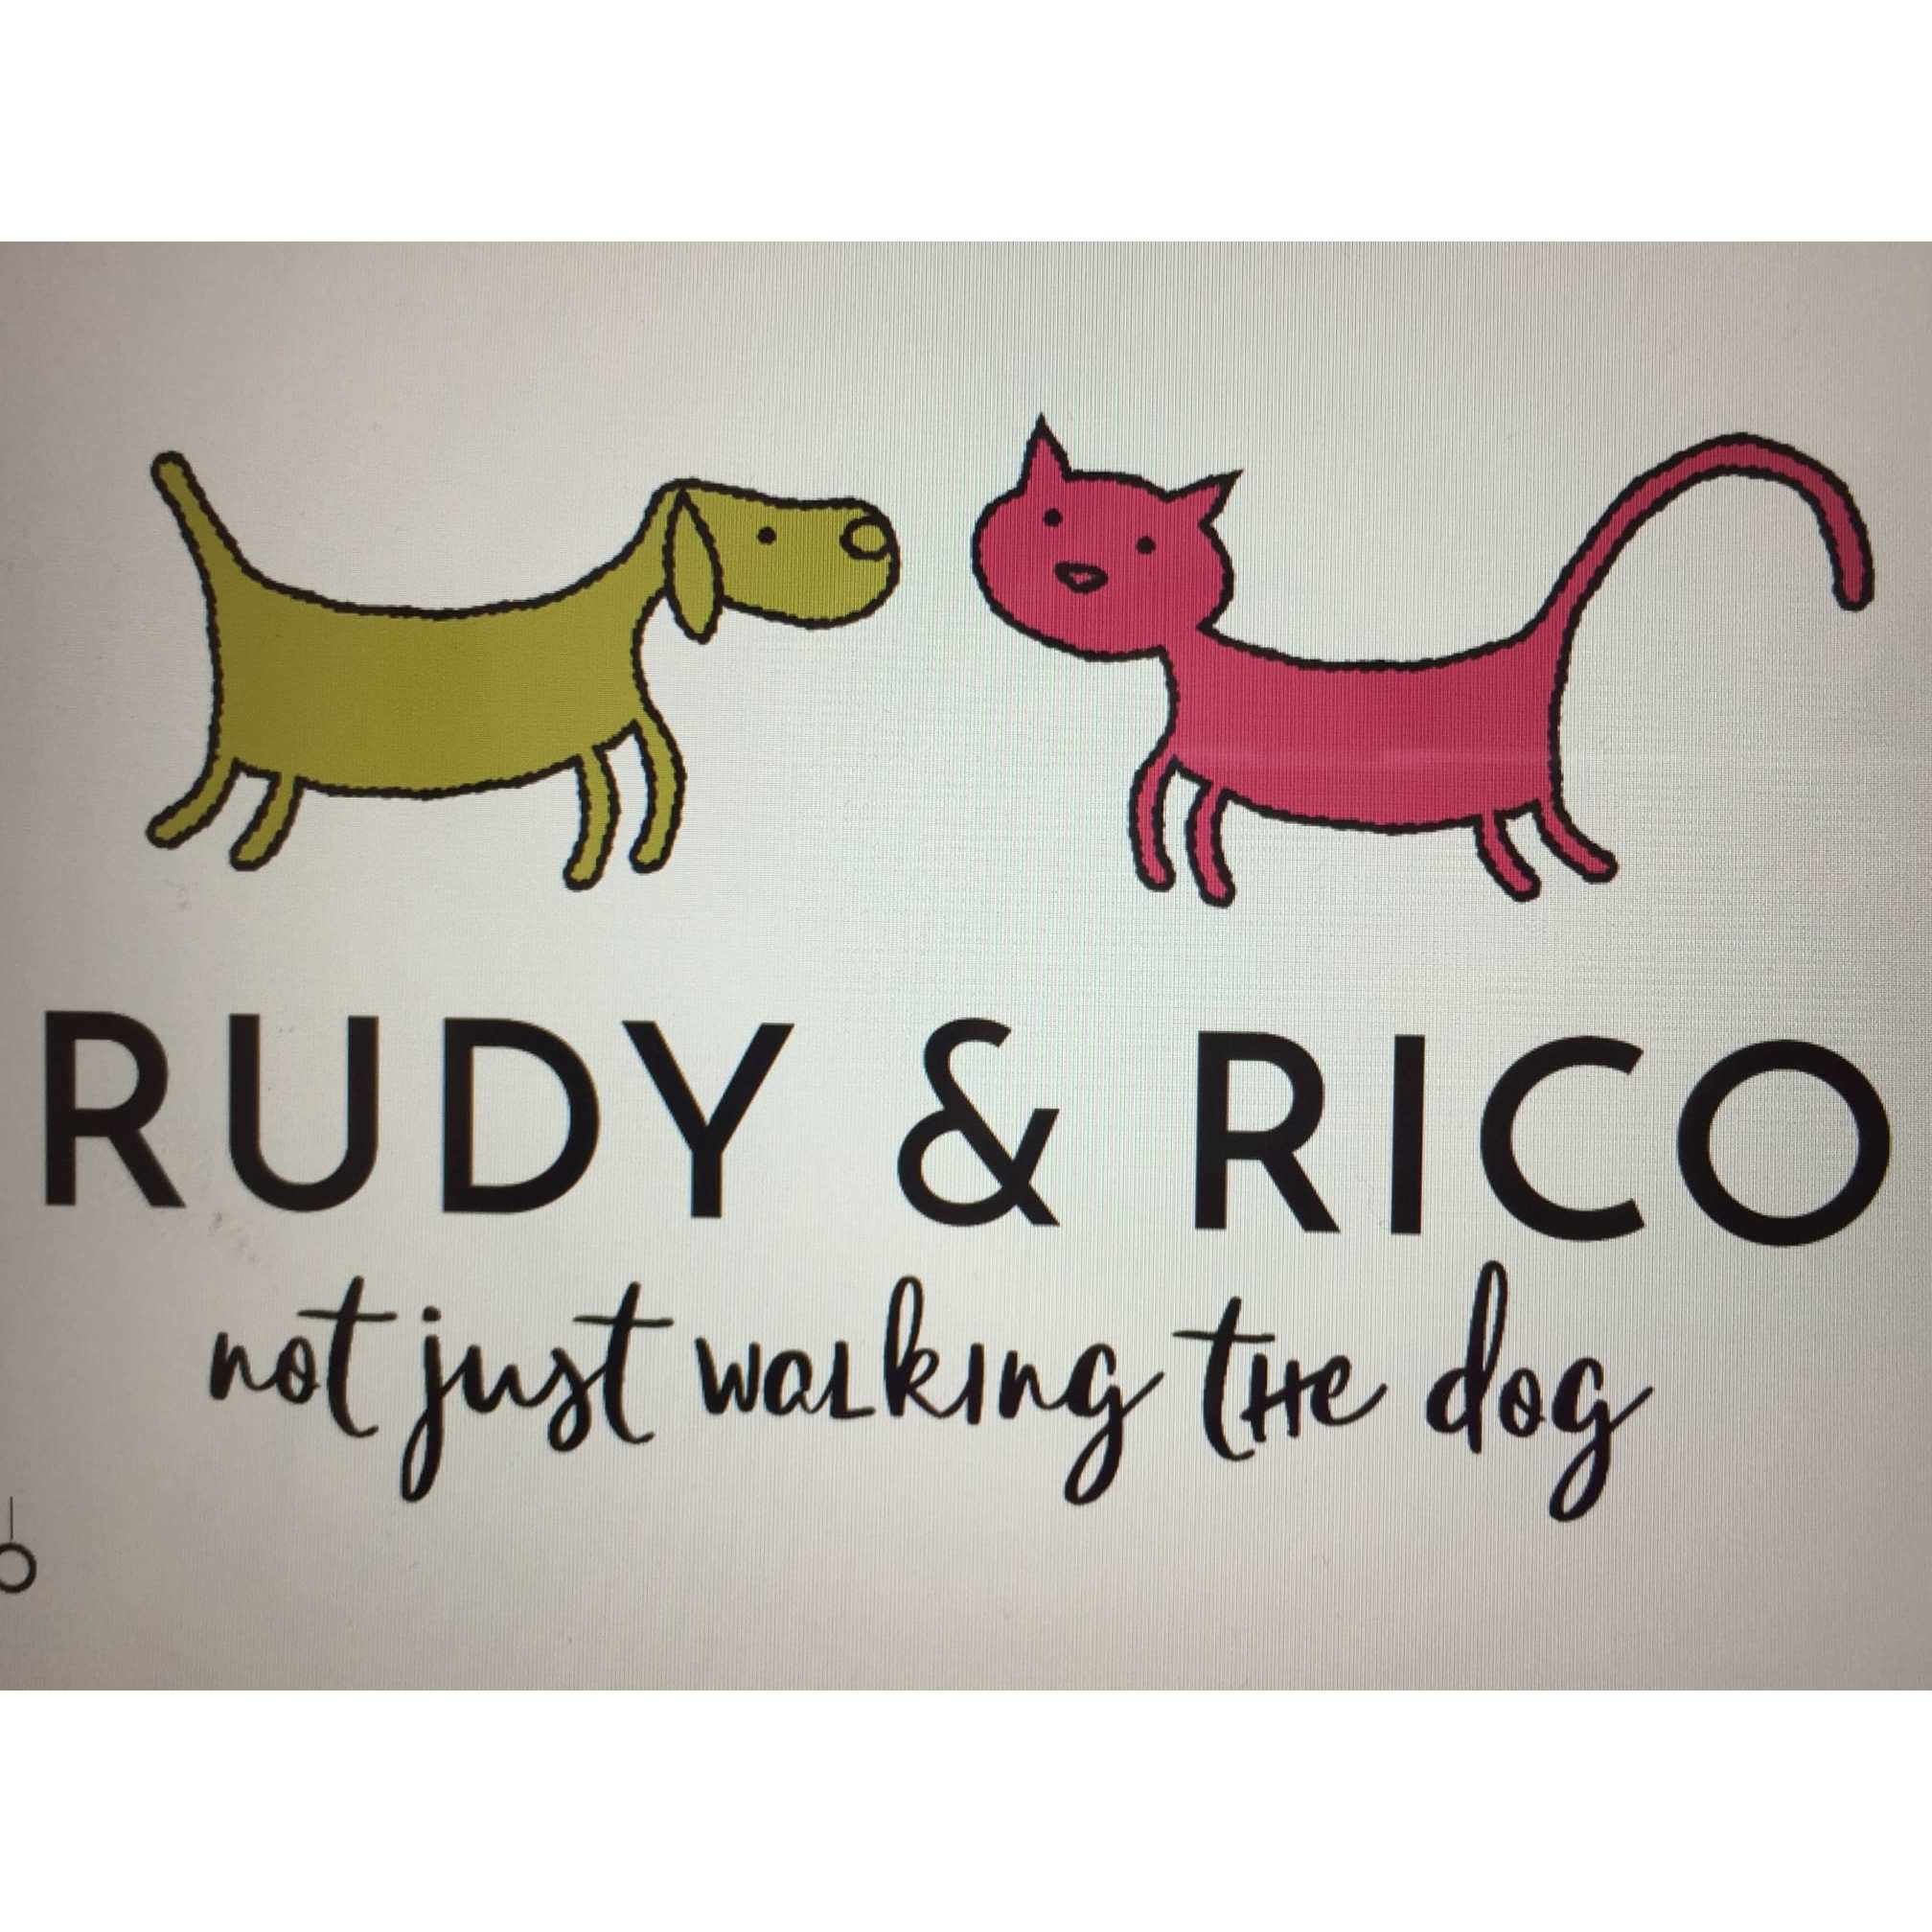 Rudy & Rico - Not Just Walking the Dog - Manchester, Lancashire M21 8BJ - 07976 981601 | ShowMeLocal.com